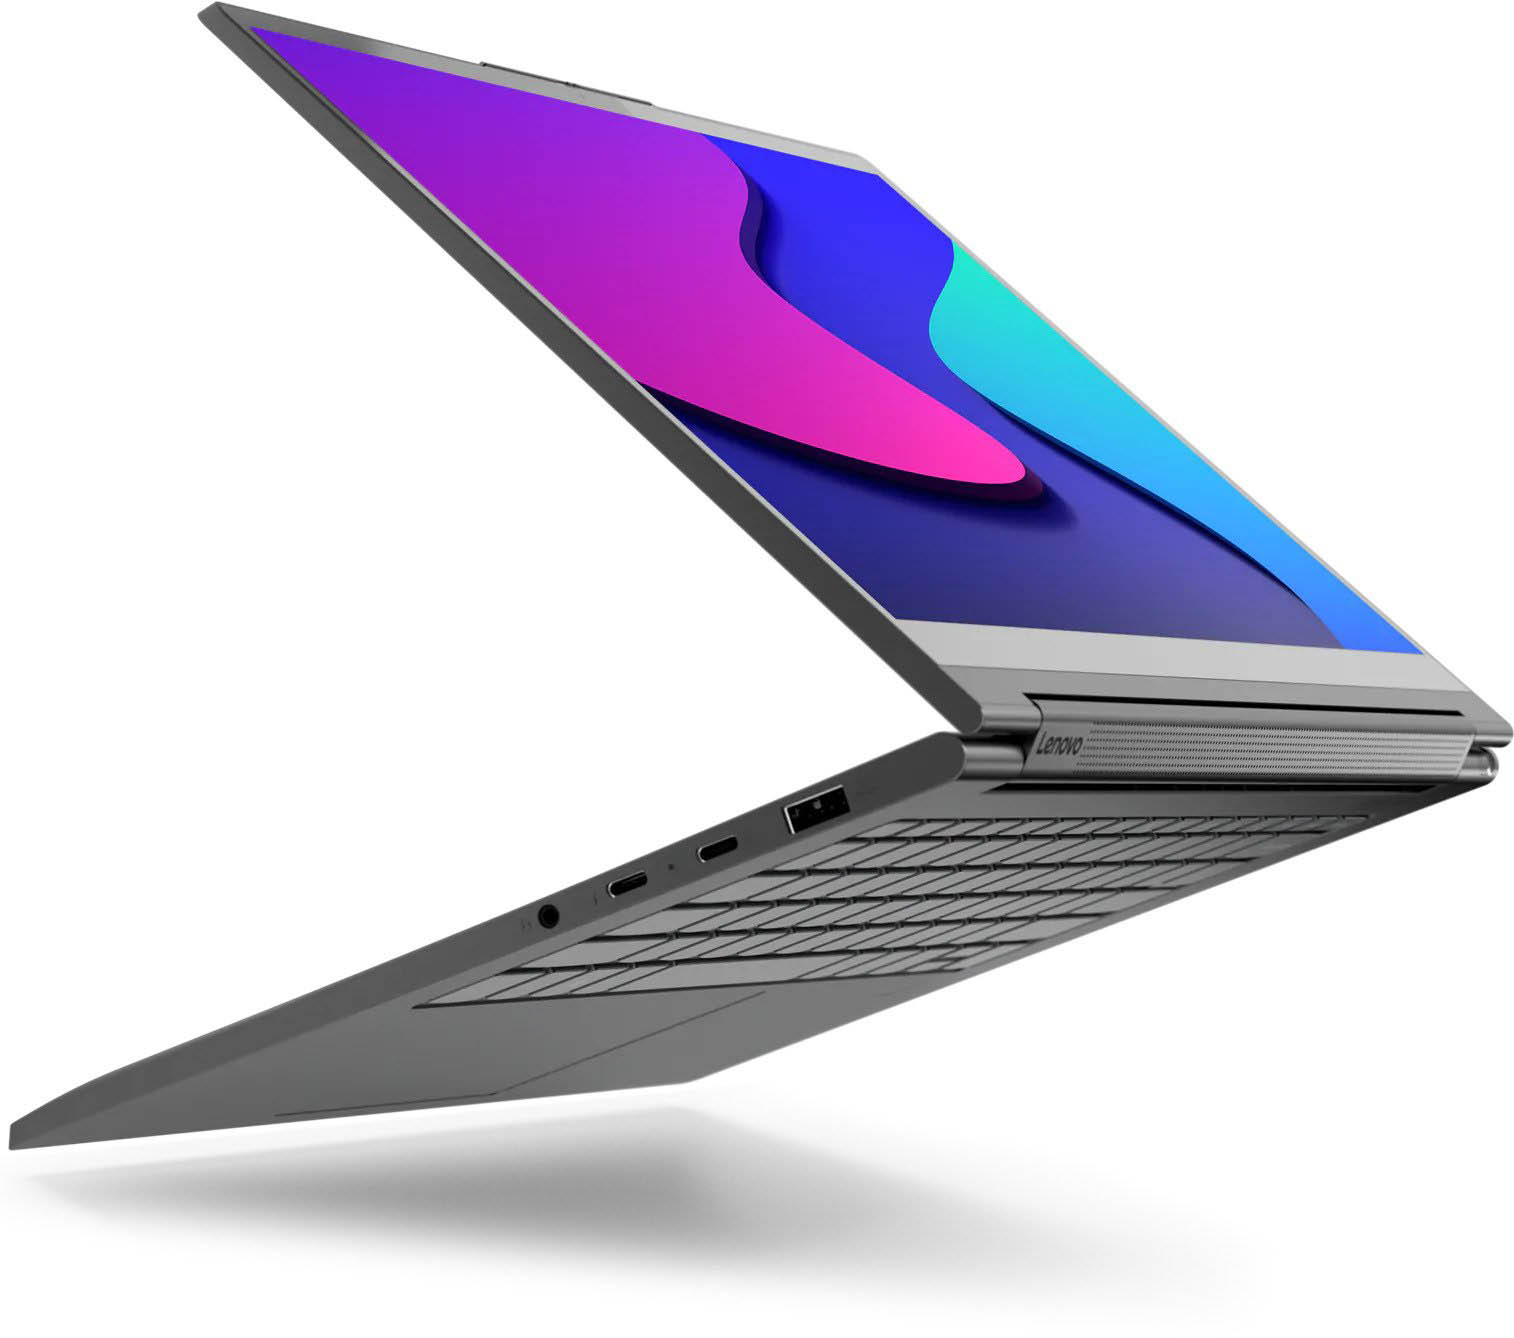 Lenovo Yoga C940 Laptop